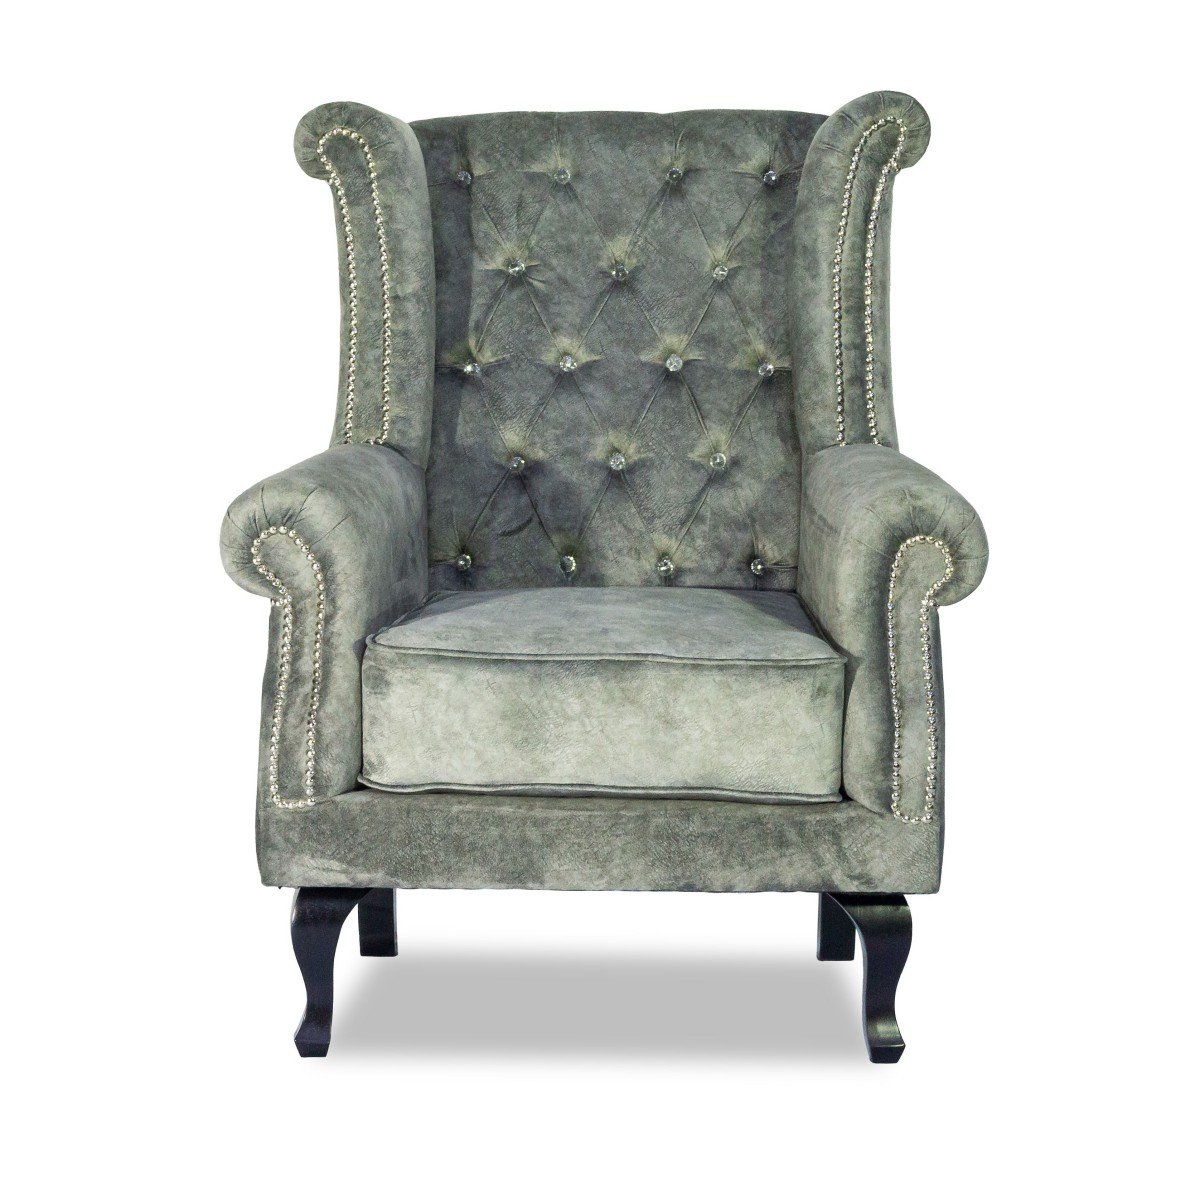 Chesterfield Wing Chair in Malaysia Online- Cassa Imperia